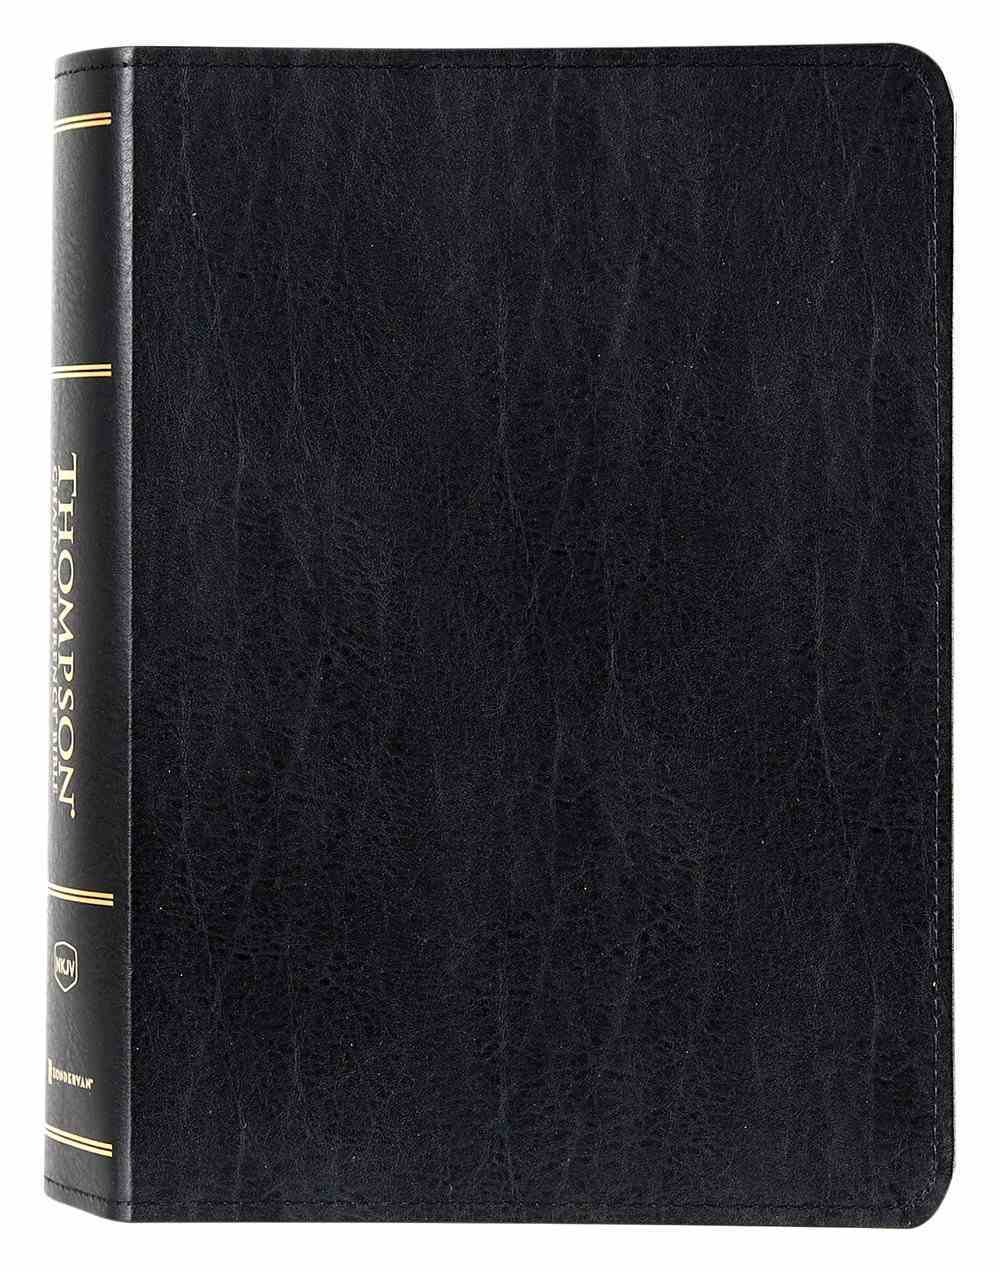 NKJV Thompson Chain-Reference Bible Black (Red Letter Edition) Bonded Leather